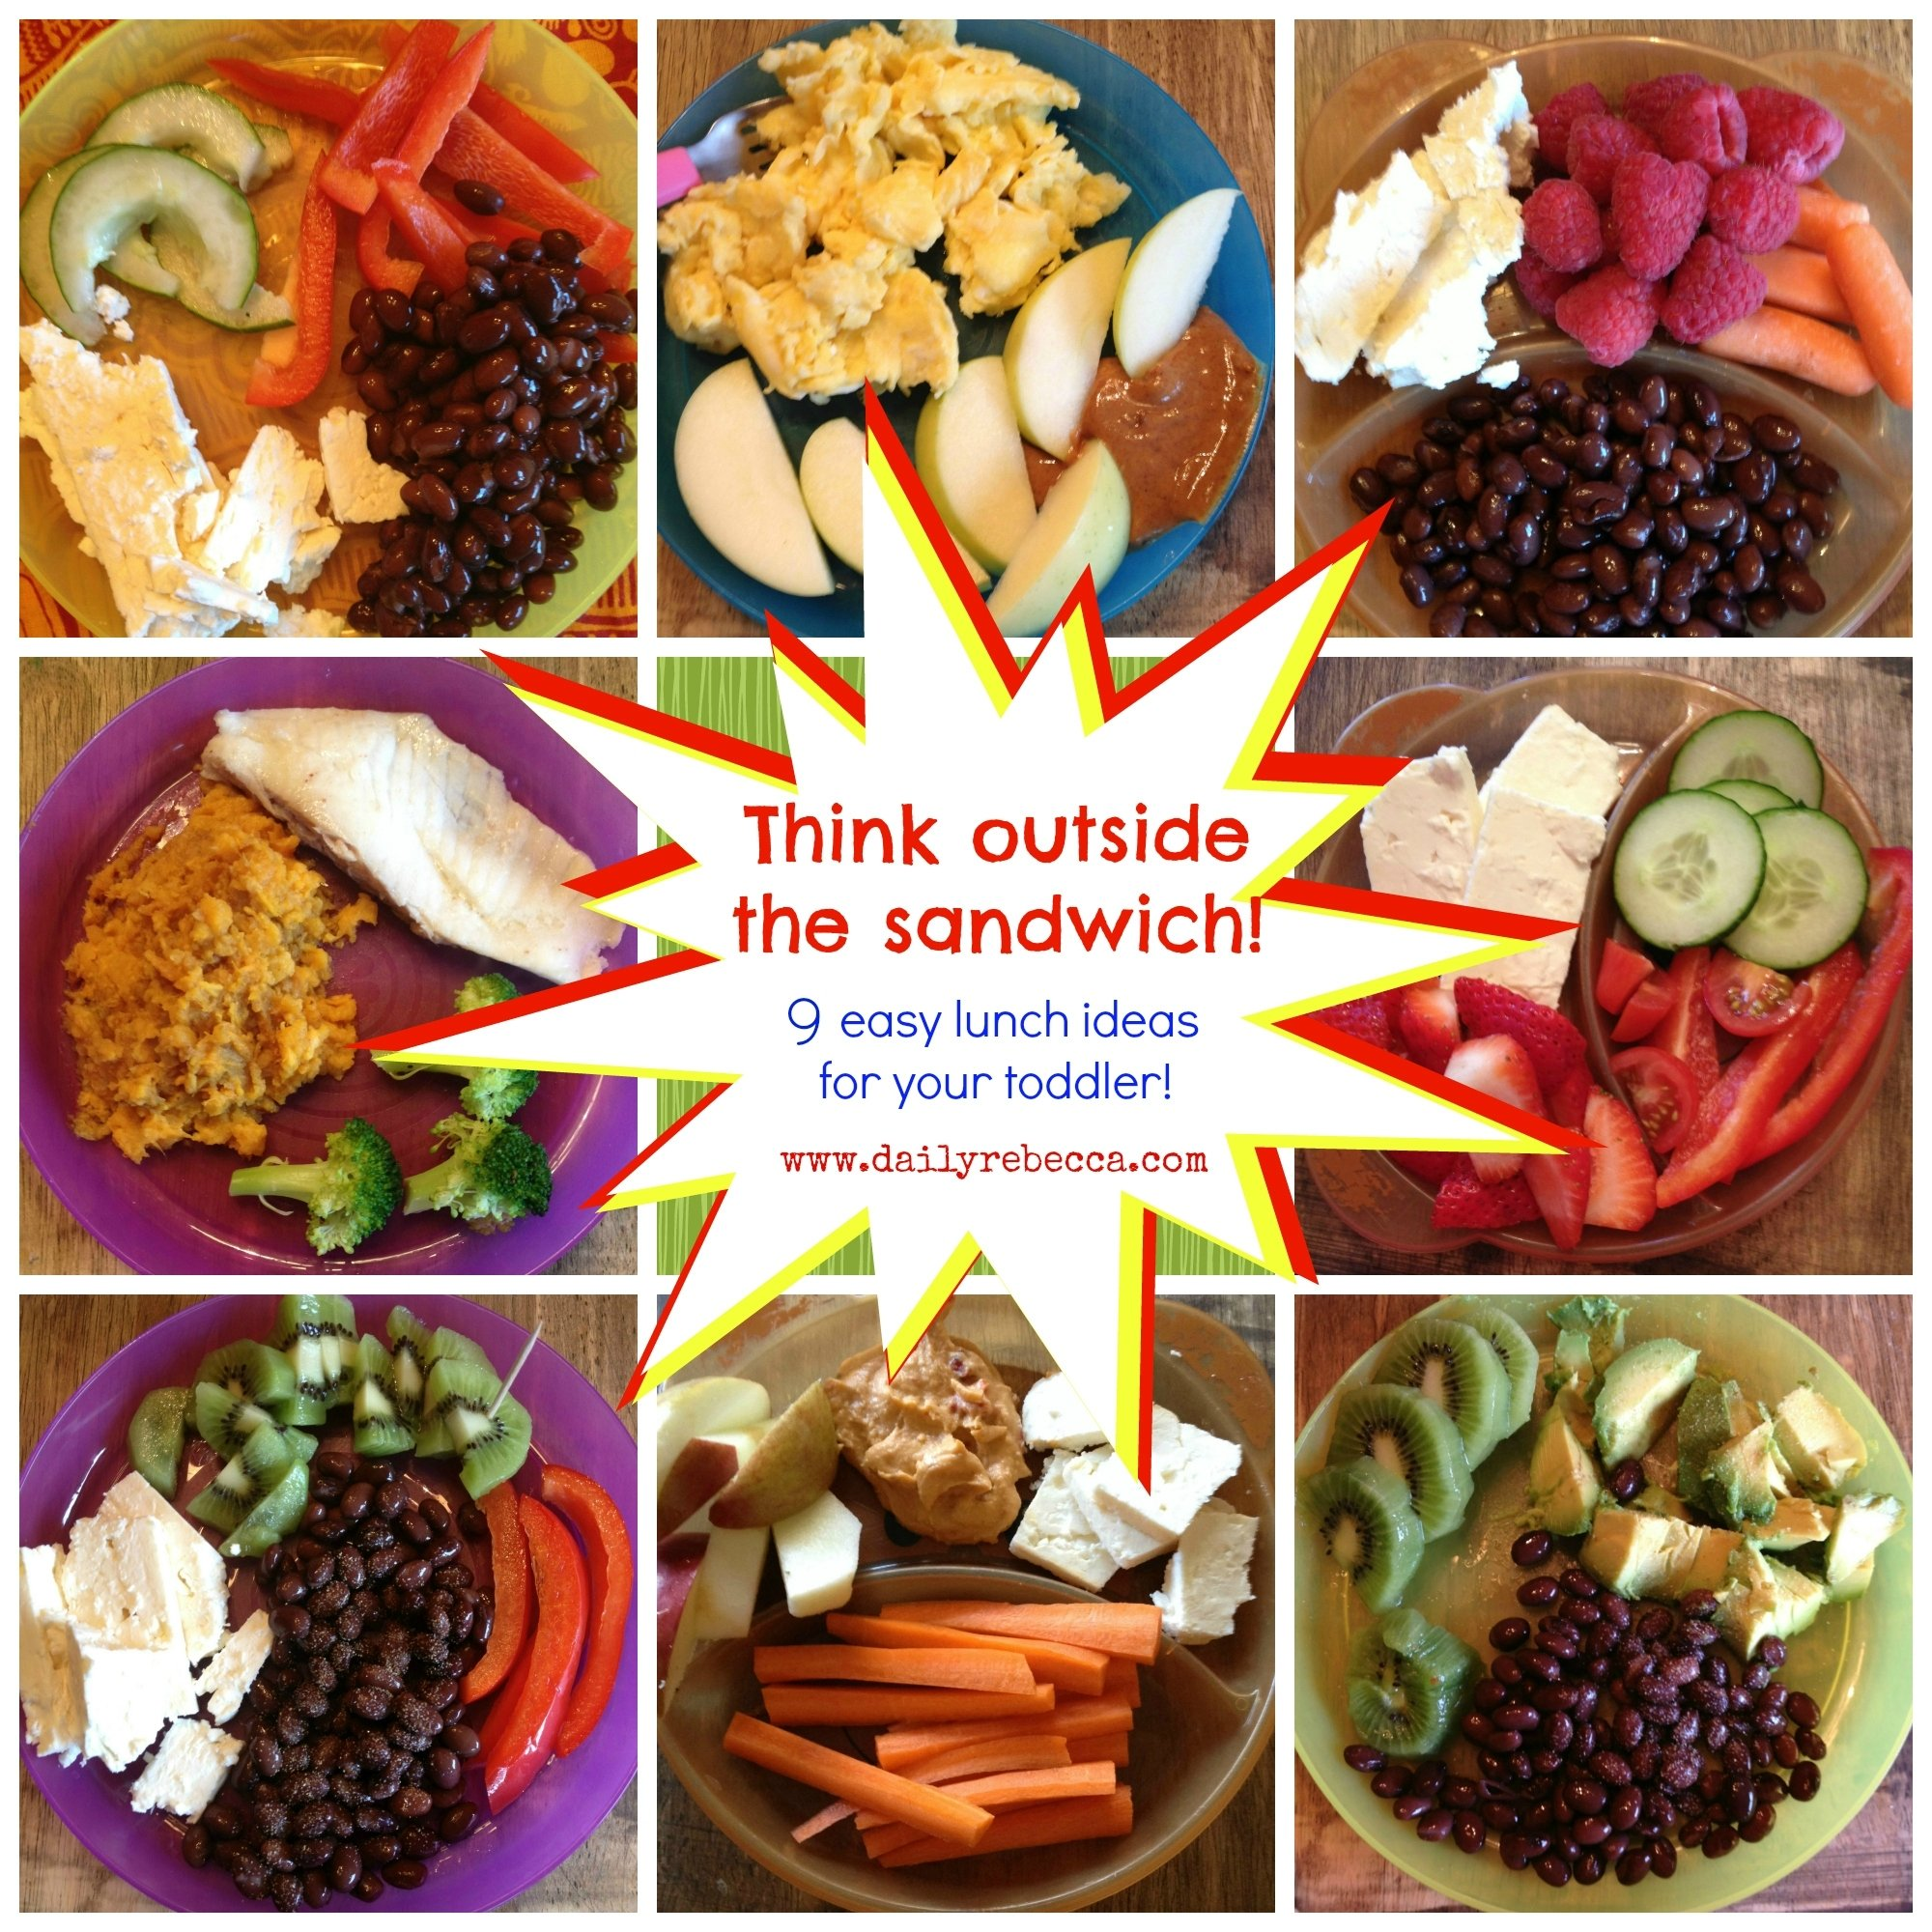 10 Stylish Easy Meal Ideas For Toddlers think outside the sandwich 9 easy lunch ideas for your toddler 6 2020